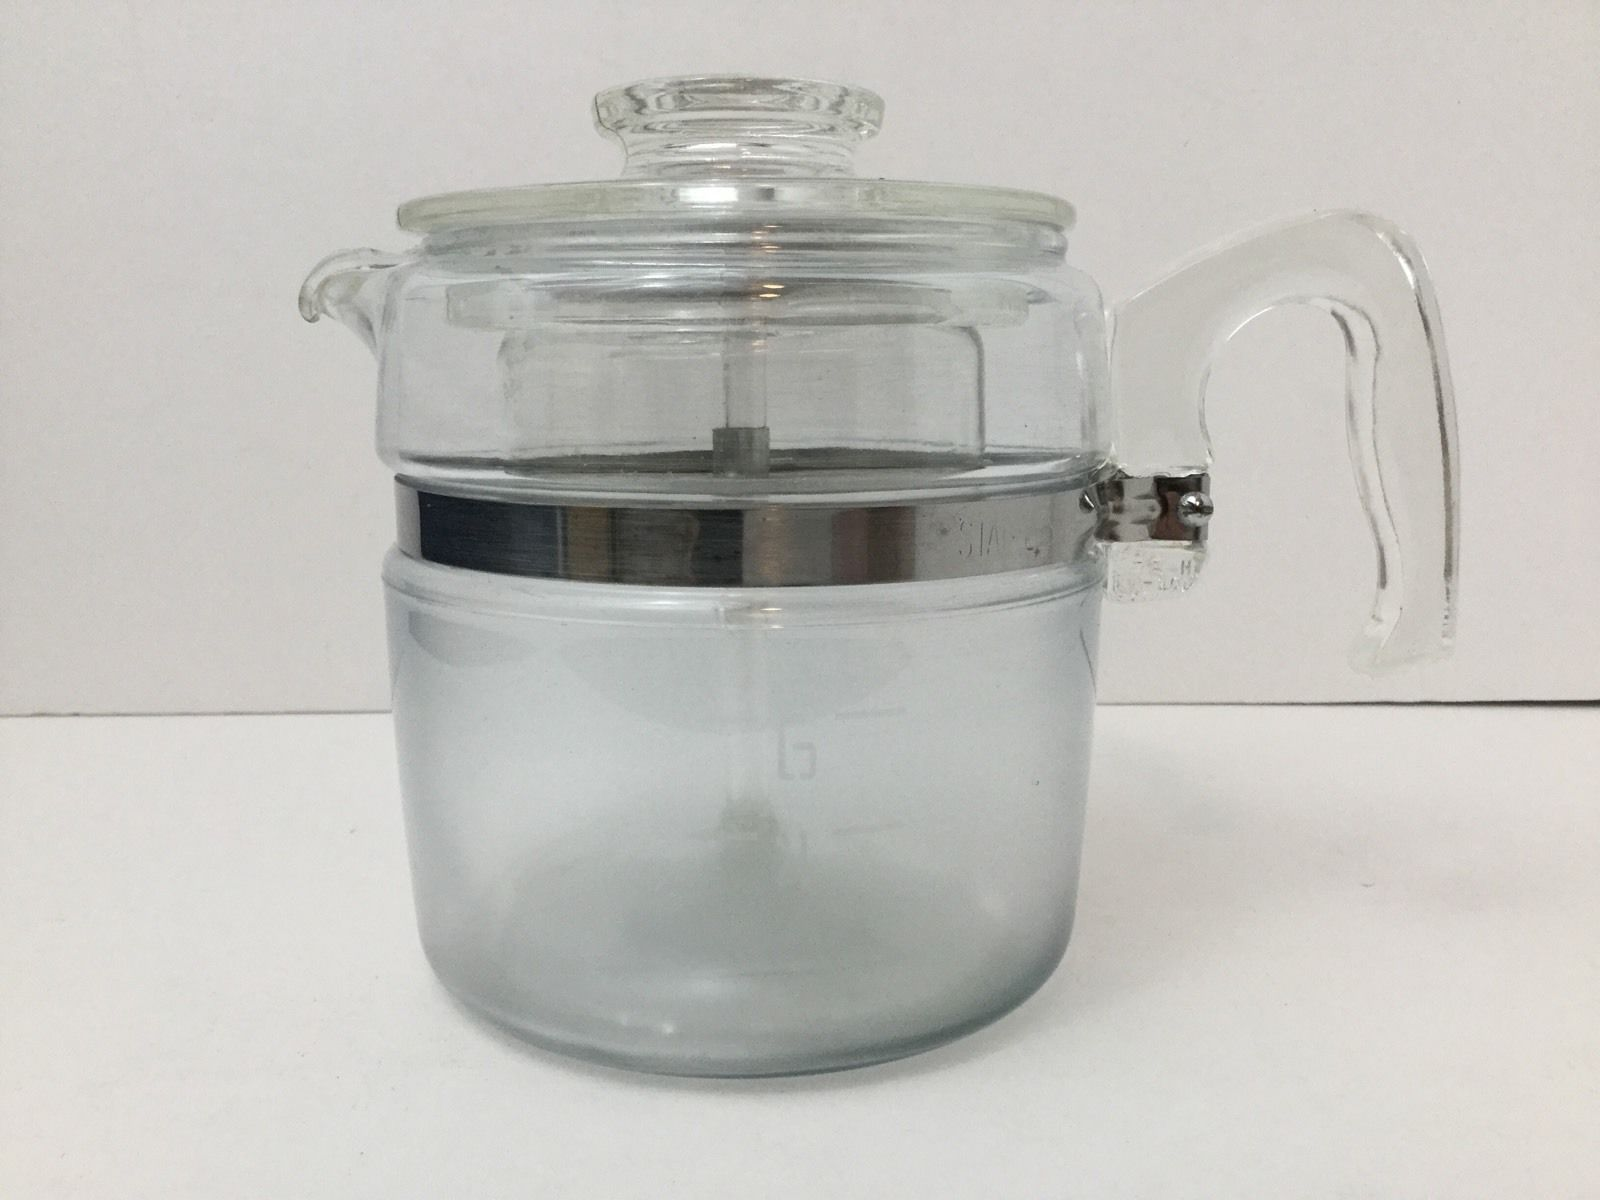 Vintage Pyrex 6 Cup Coffee Pot Percolator Glass 7756 Flameware COMPLETE